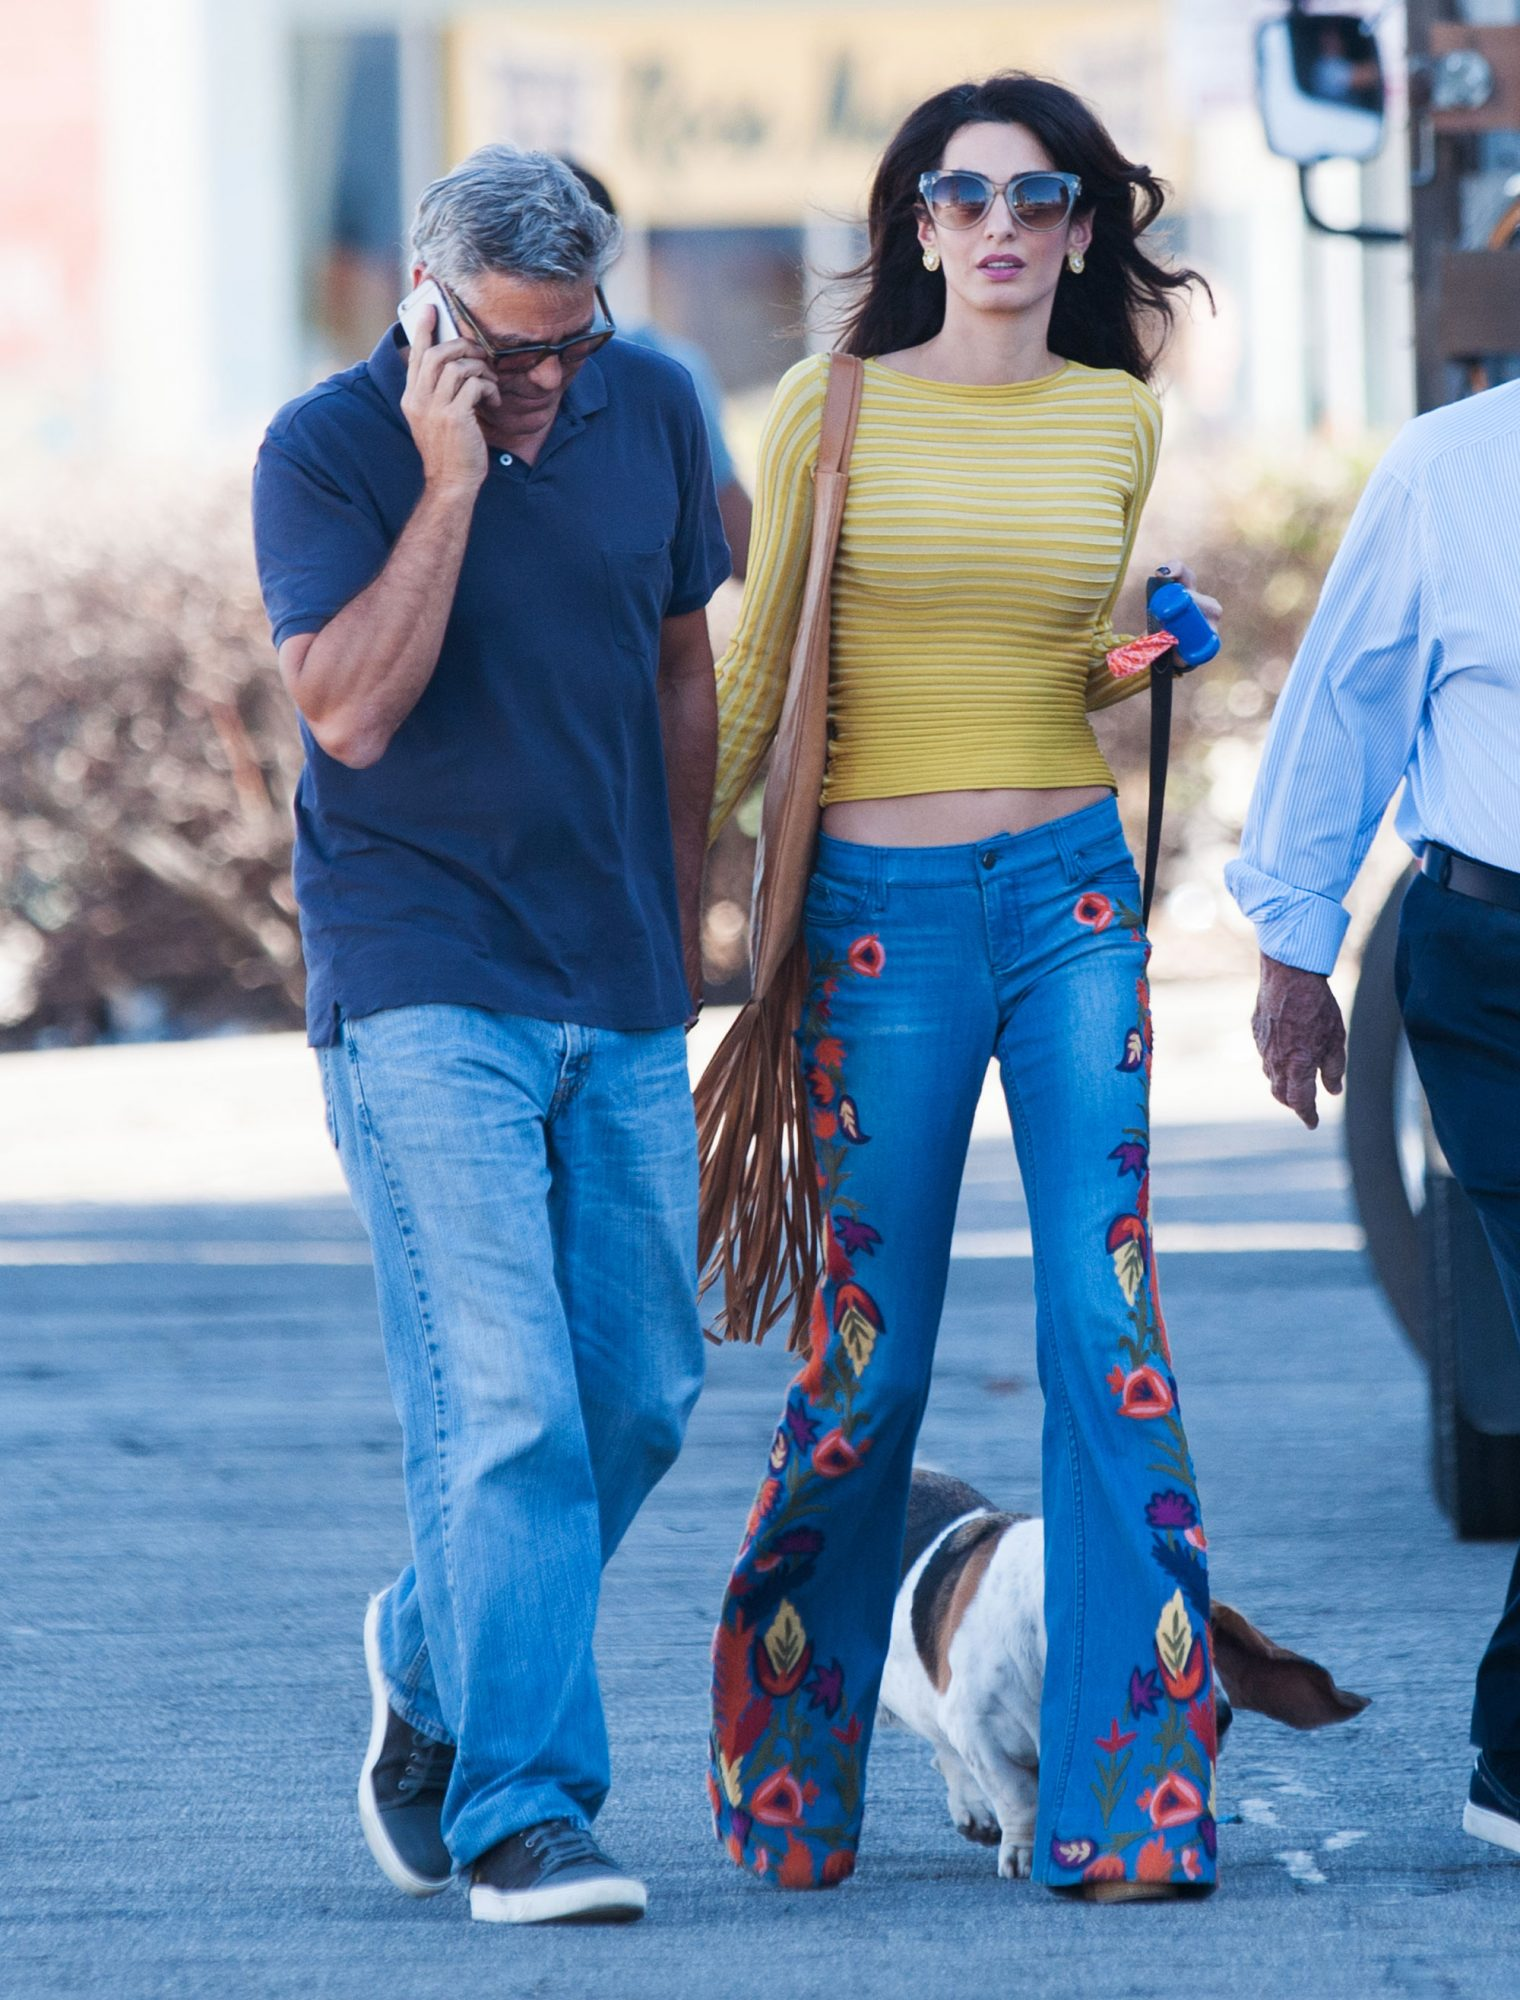 10/20/2016 Amal Clooney is spotted visiting husband George Clooney on the Los Angeles set of Suburbicon today. The 38 year old British-Lebanese lawyer and activist was seen arriving to the Cohen Brothers film set today looking casual in hand painted flared denim jeans paired with a tight fitting yellow crop top. The couple were spotted strolling hand and hand with their pet basset hound. Please byline:TheImageDirect.com